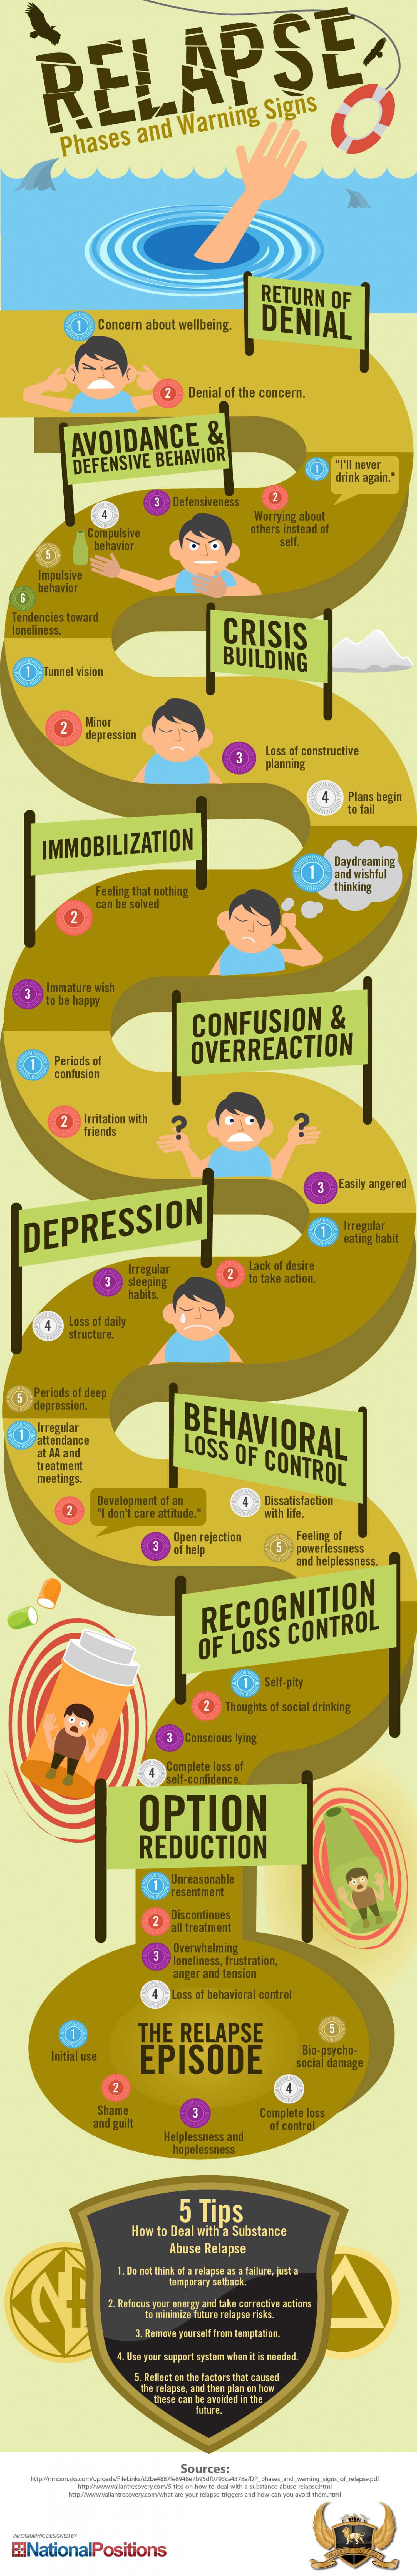 Relapse Phases And Warning Signs Infographic Visualistan